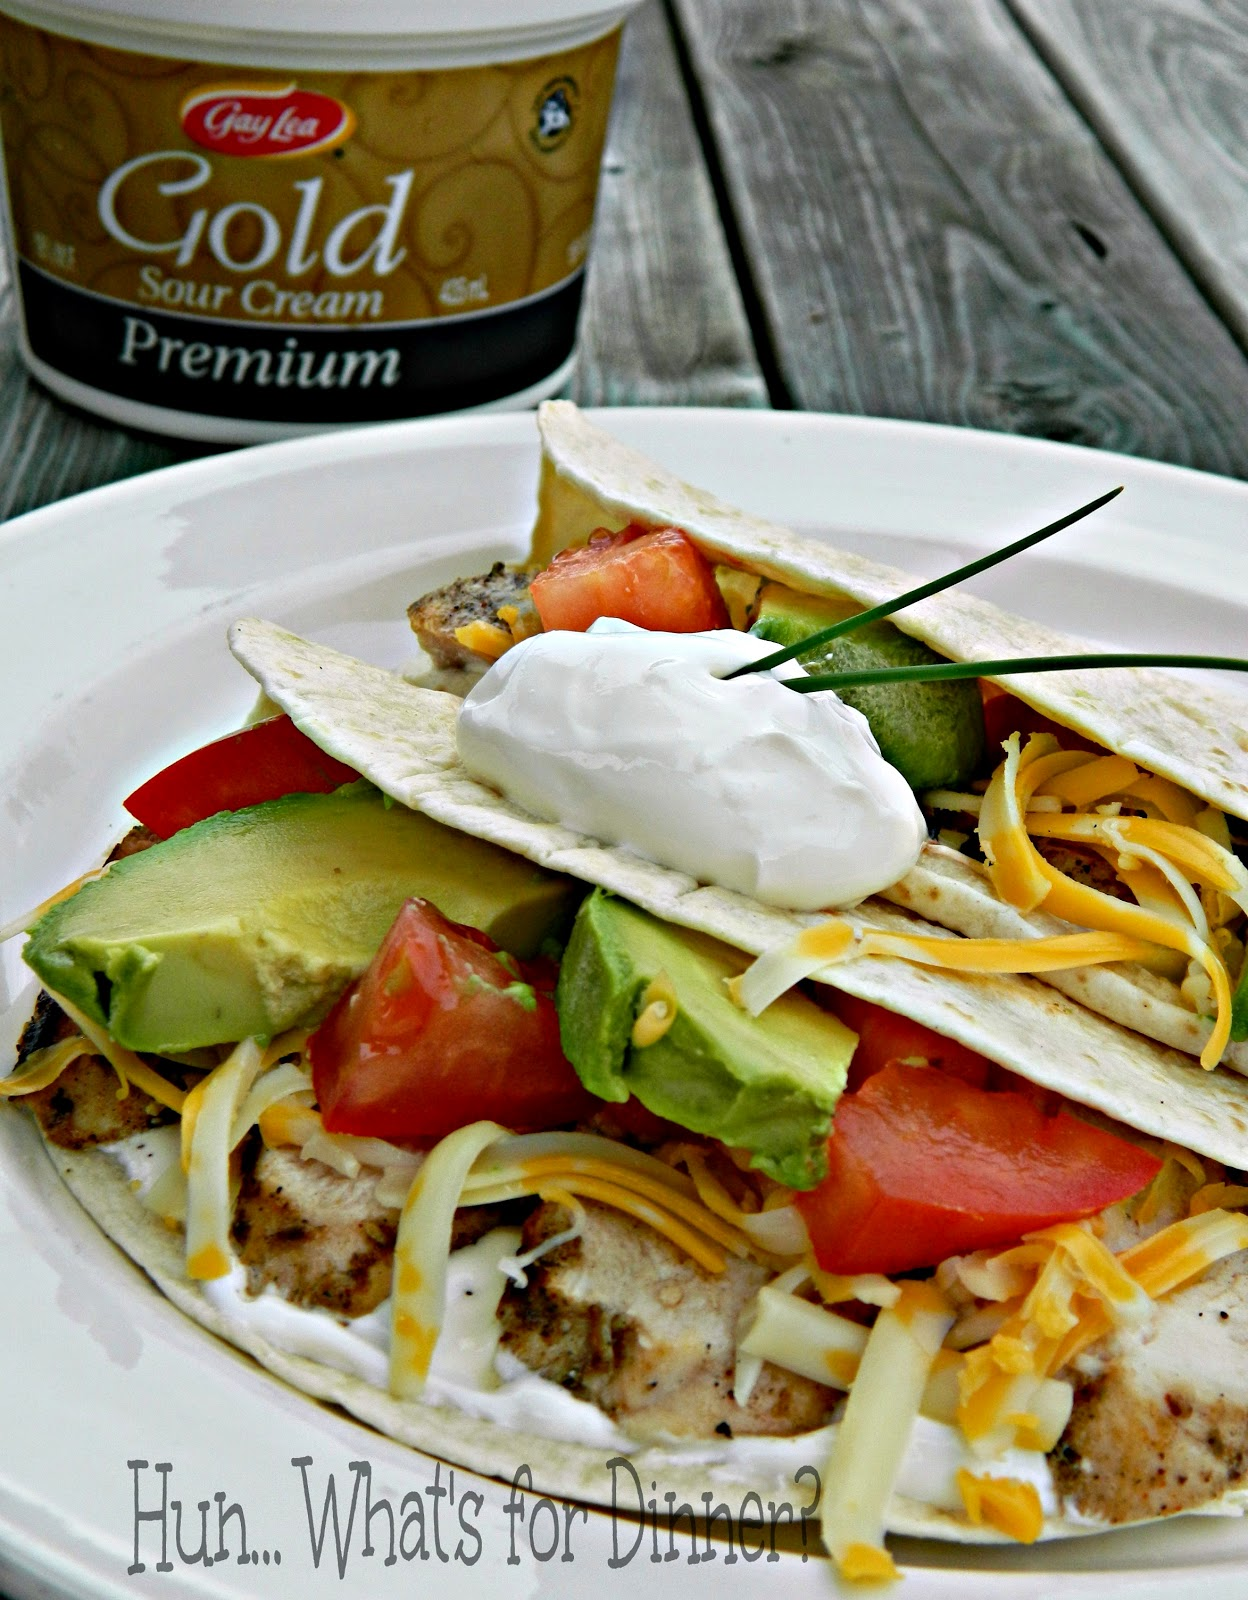 Hun... What's for Dinner? | Grilled Chicken Fajitas #GayLea Foods